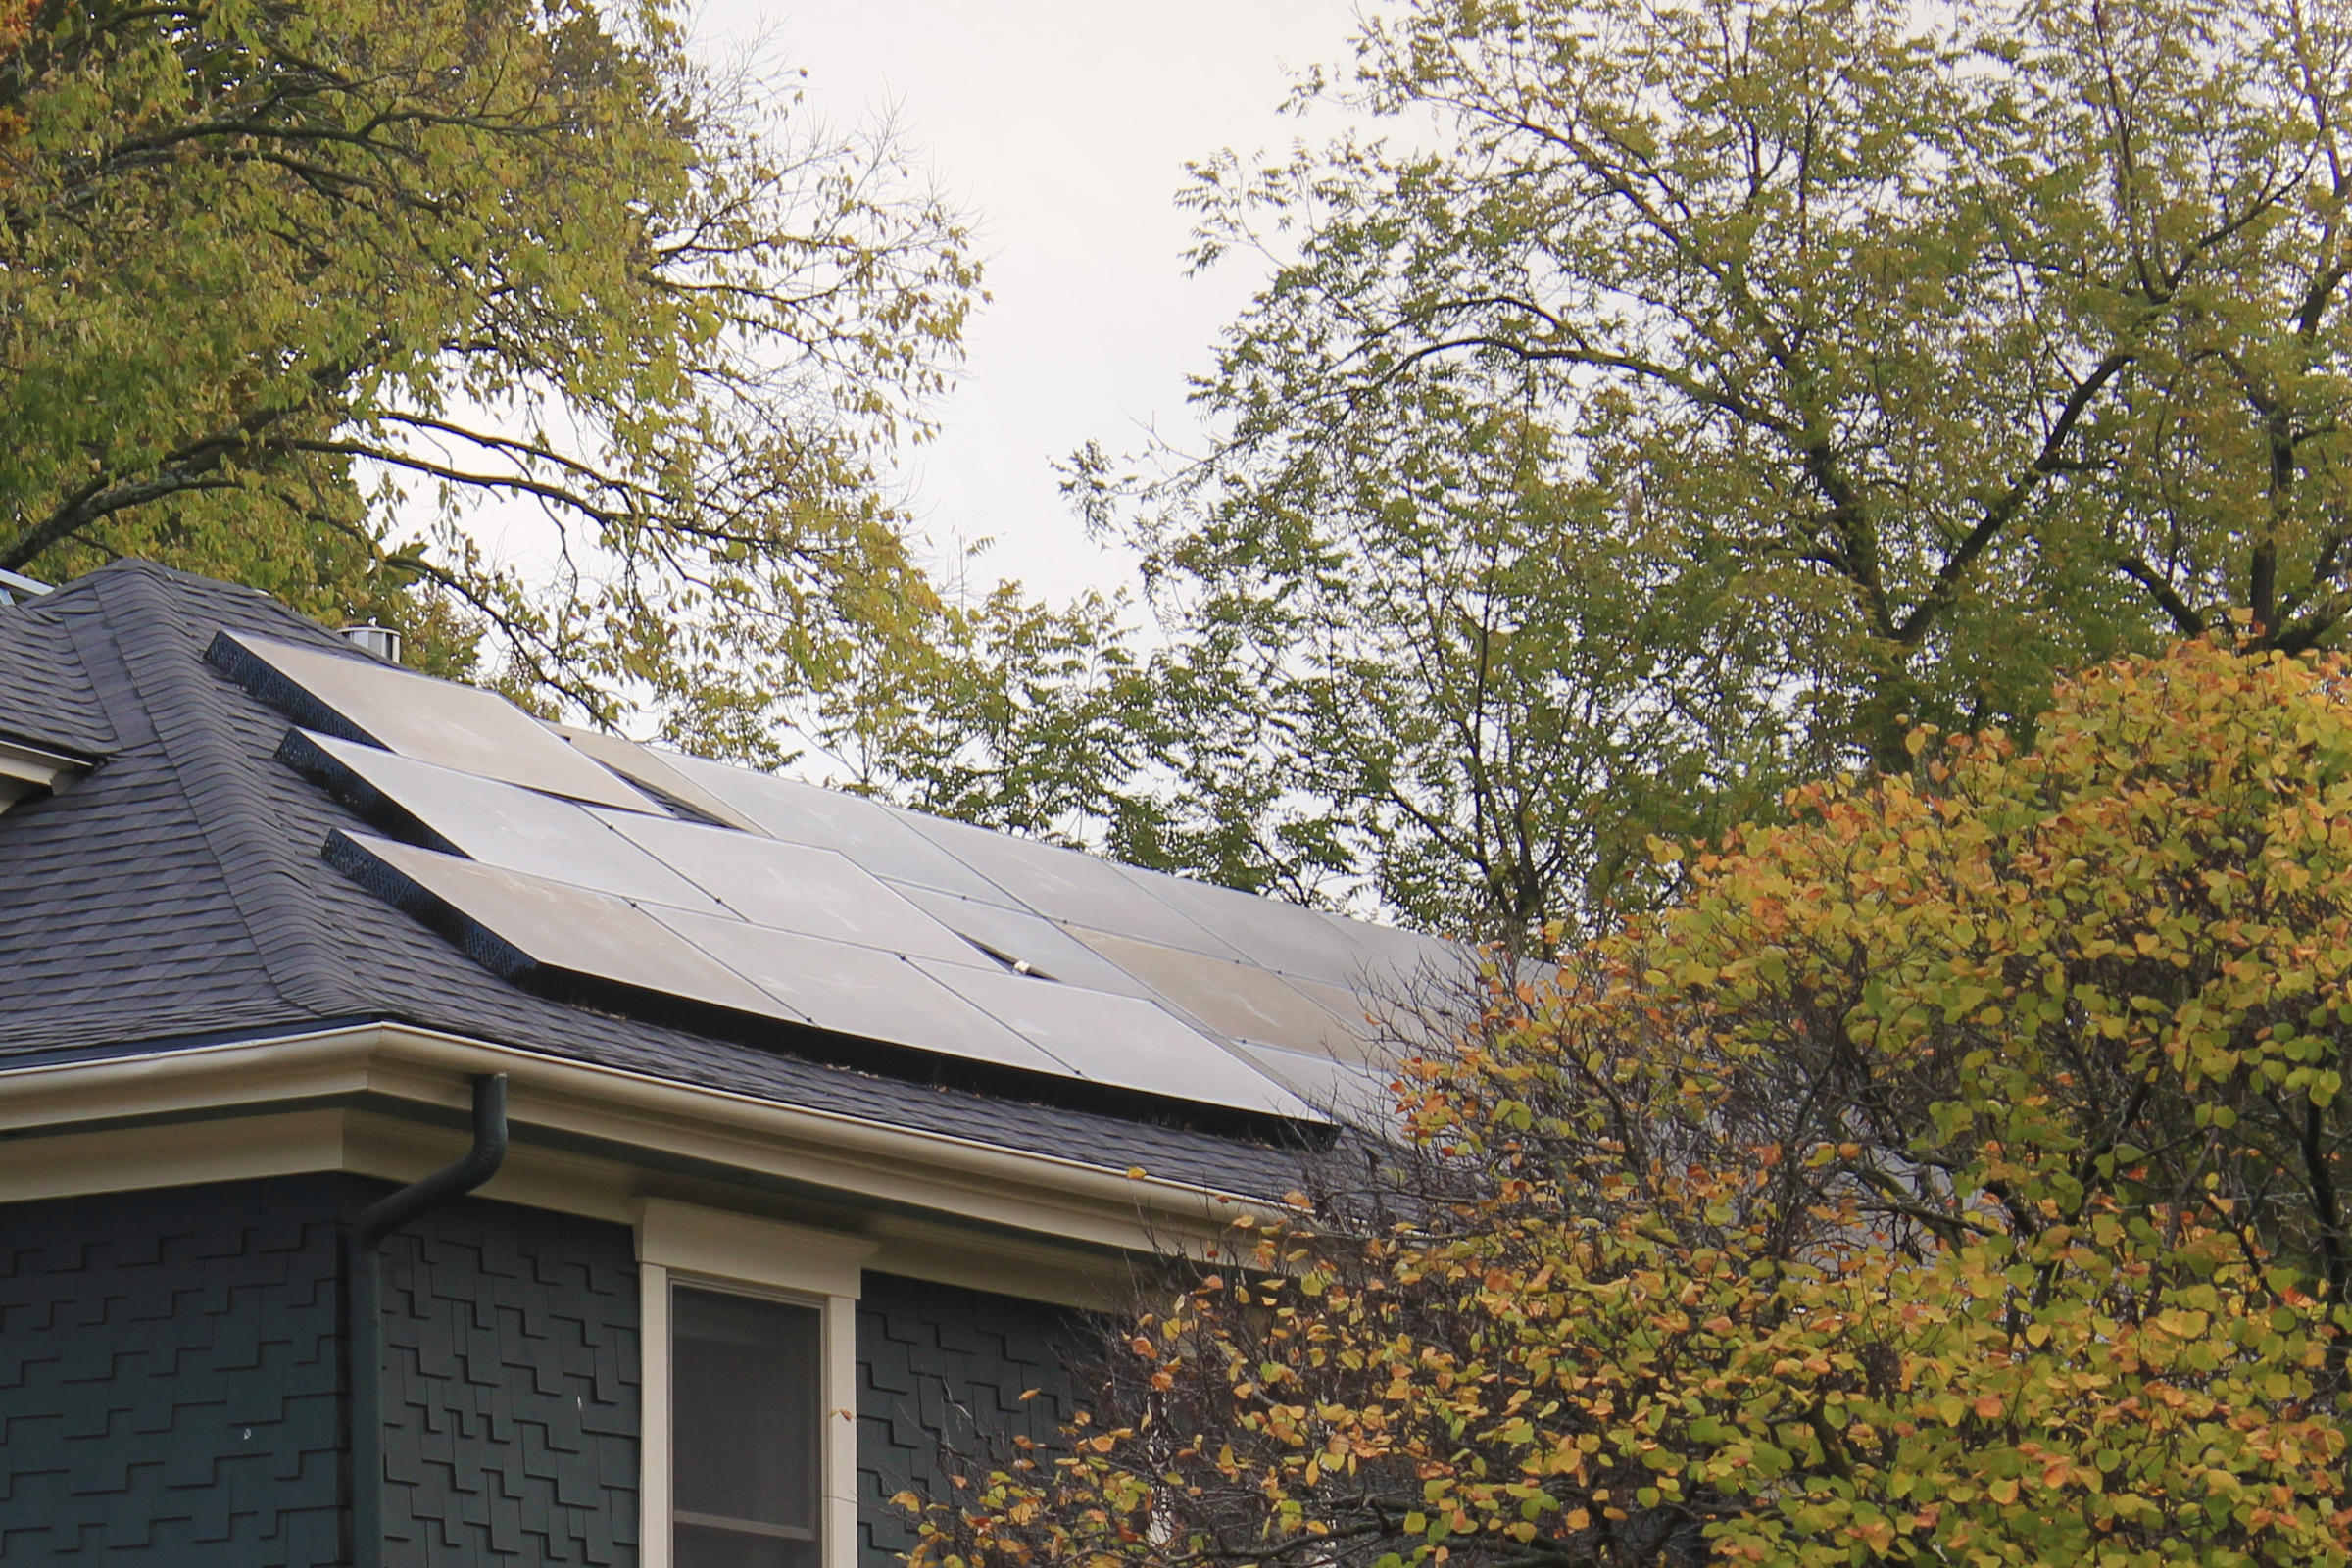 Solar panels on the roof of a home in Lawrence, Kansas.(Photo by Stephen Koranda)